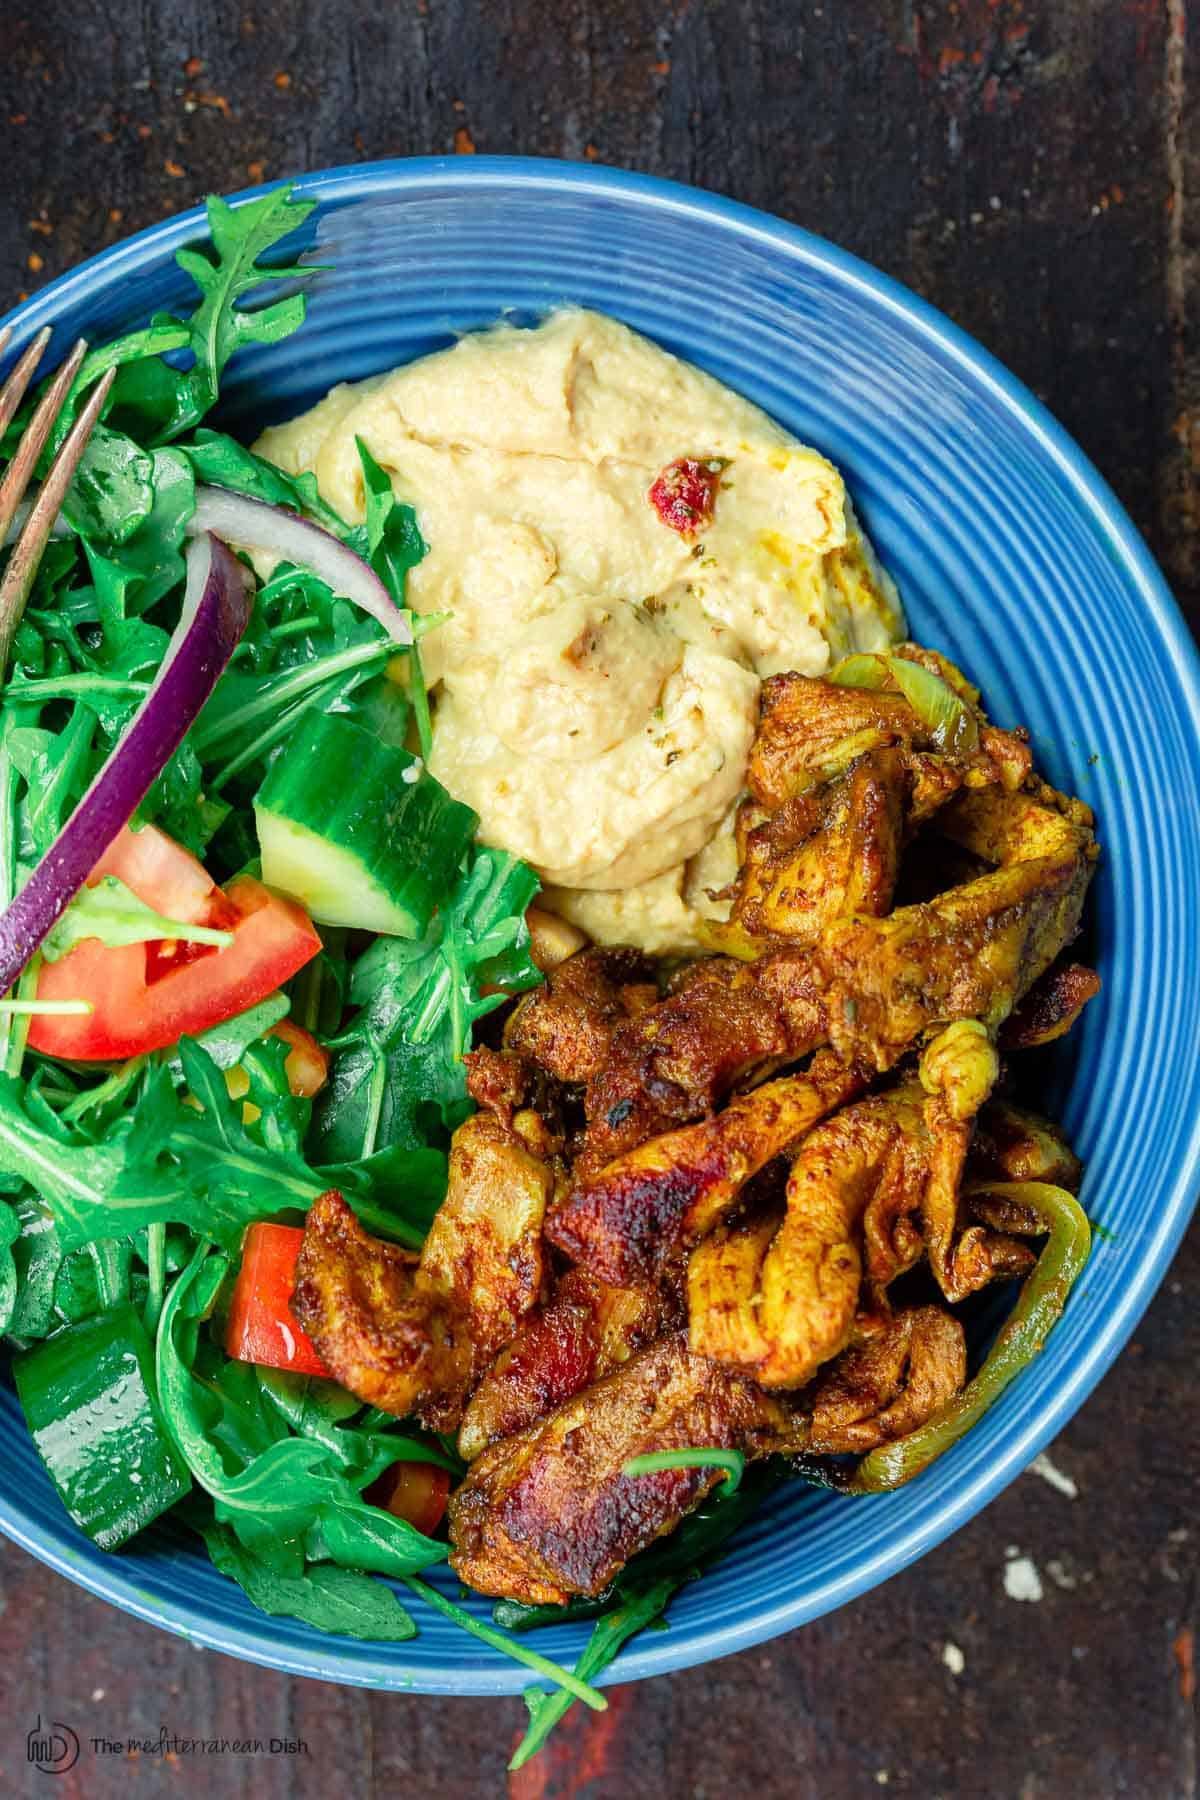 Chicken Shawarma Salad with arugula, tomatoes, and a side of hummus